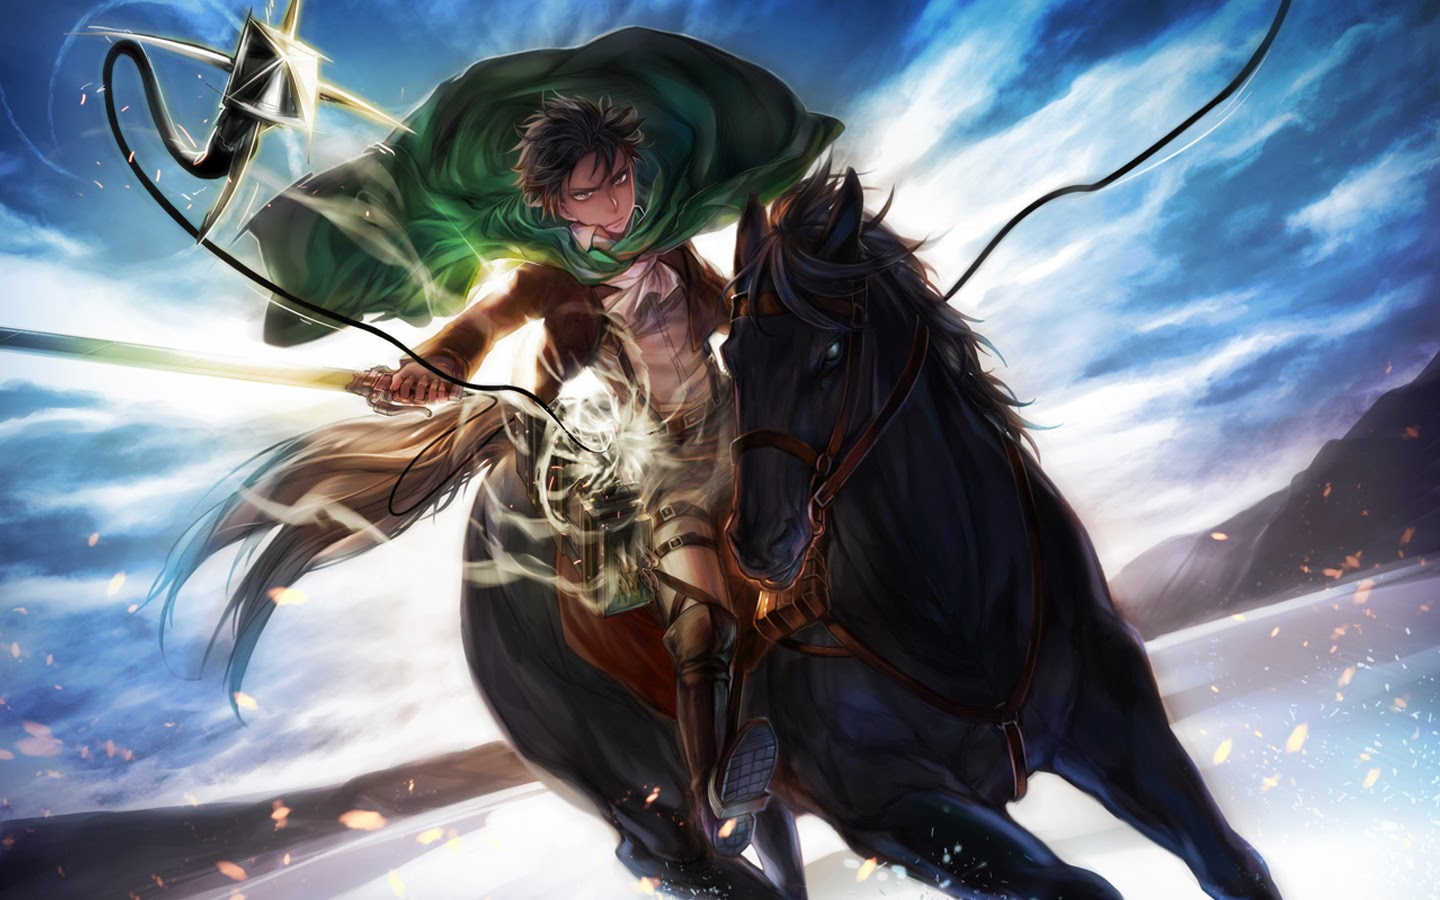 Levi Riding Horse Attack on Titan a292 HD Wallpaper 1440x900